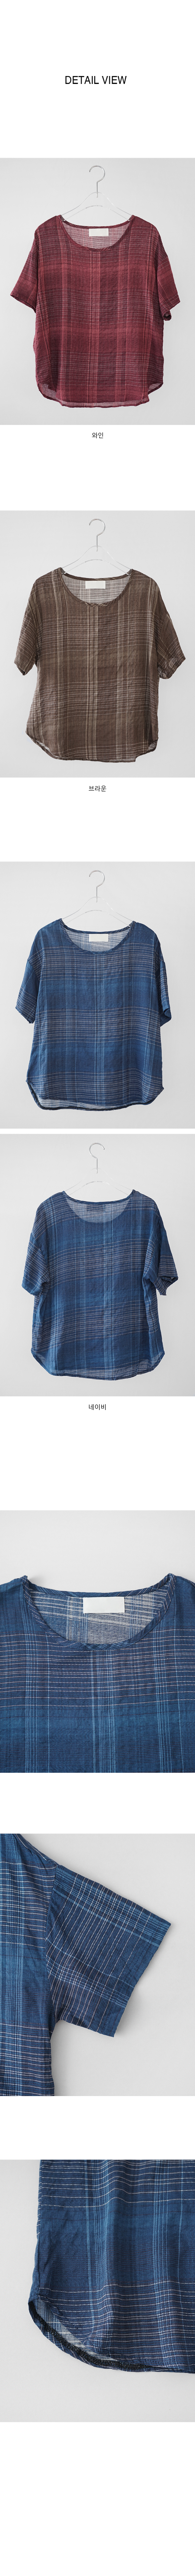 easy check blouse